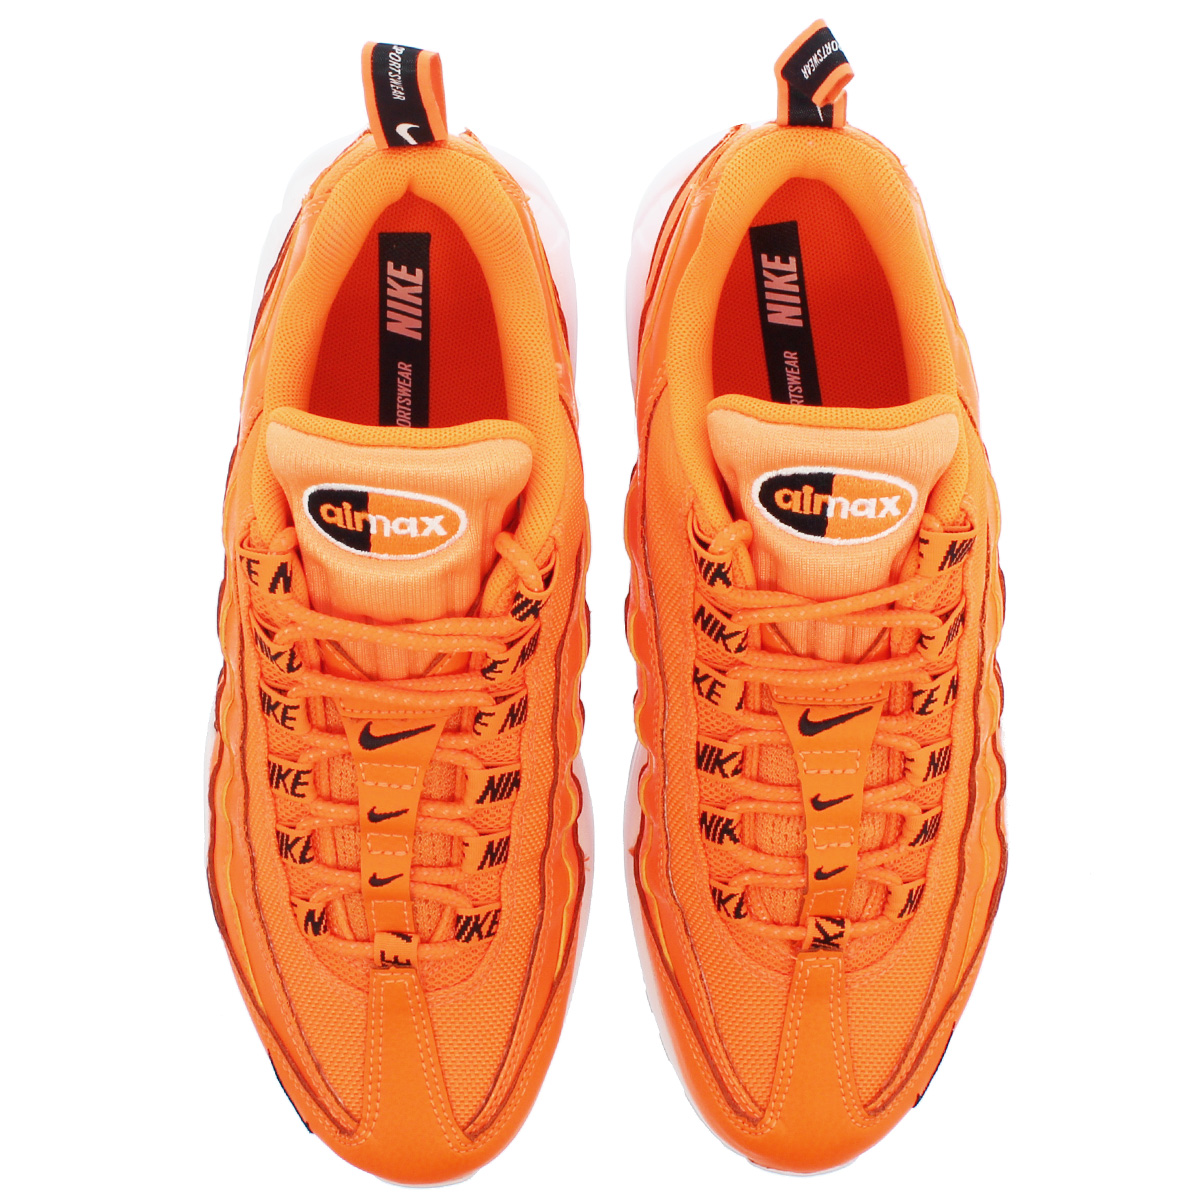 new style 5f7f9 6c597 NIKE AIR MAX 95 PREMIUM Kie Ney AMAX 95 premium TOTAL ORANGE BLACK WHITE  538,416-801